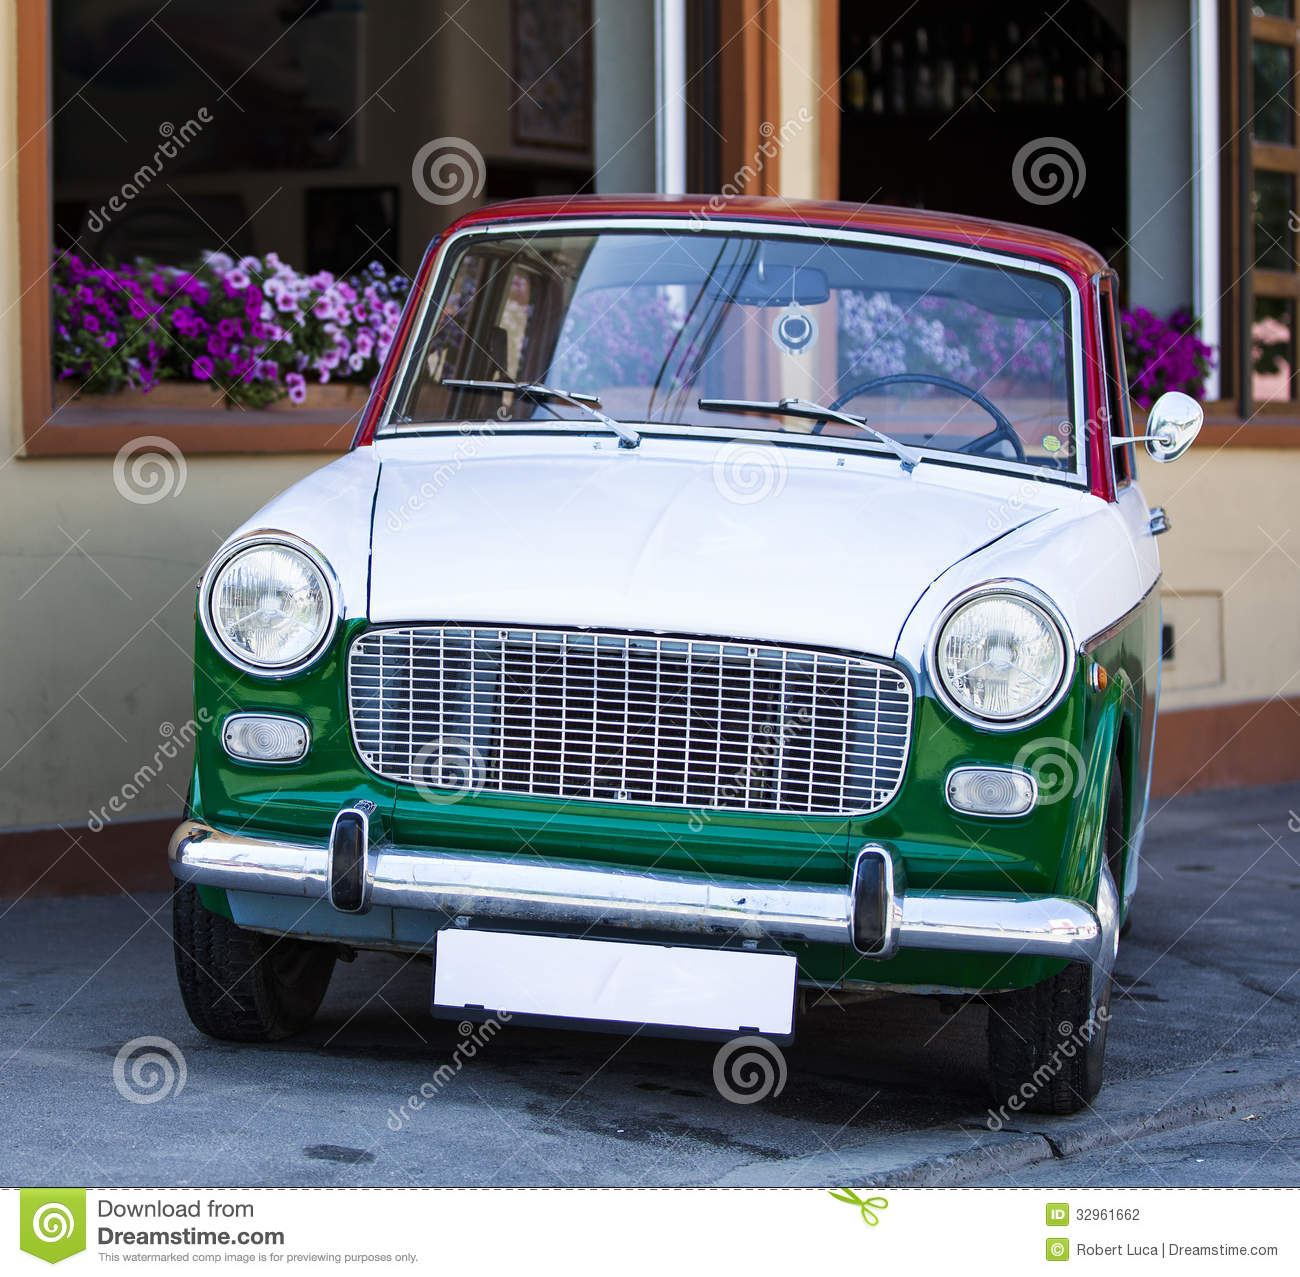 Small Car In Colors Of Italian Flag Royalty-Free Stock